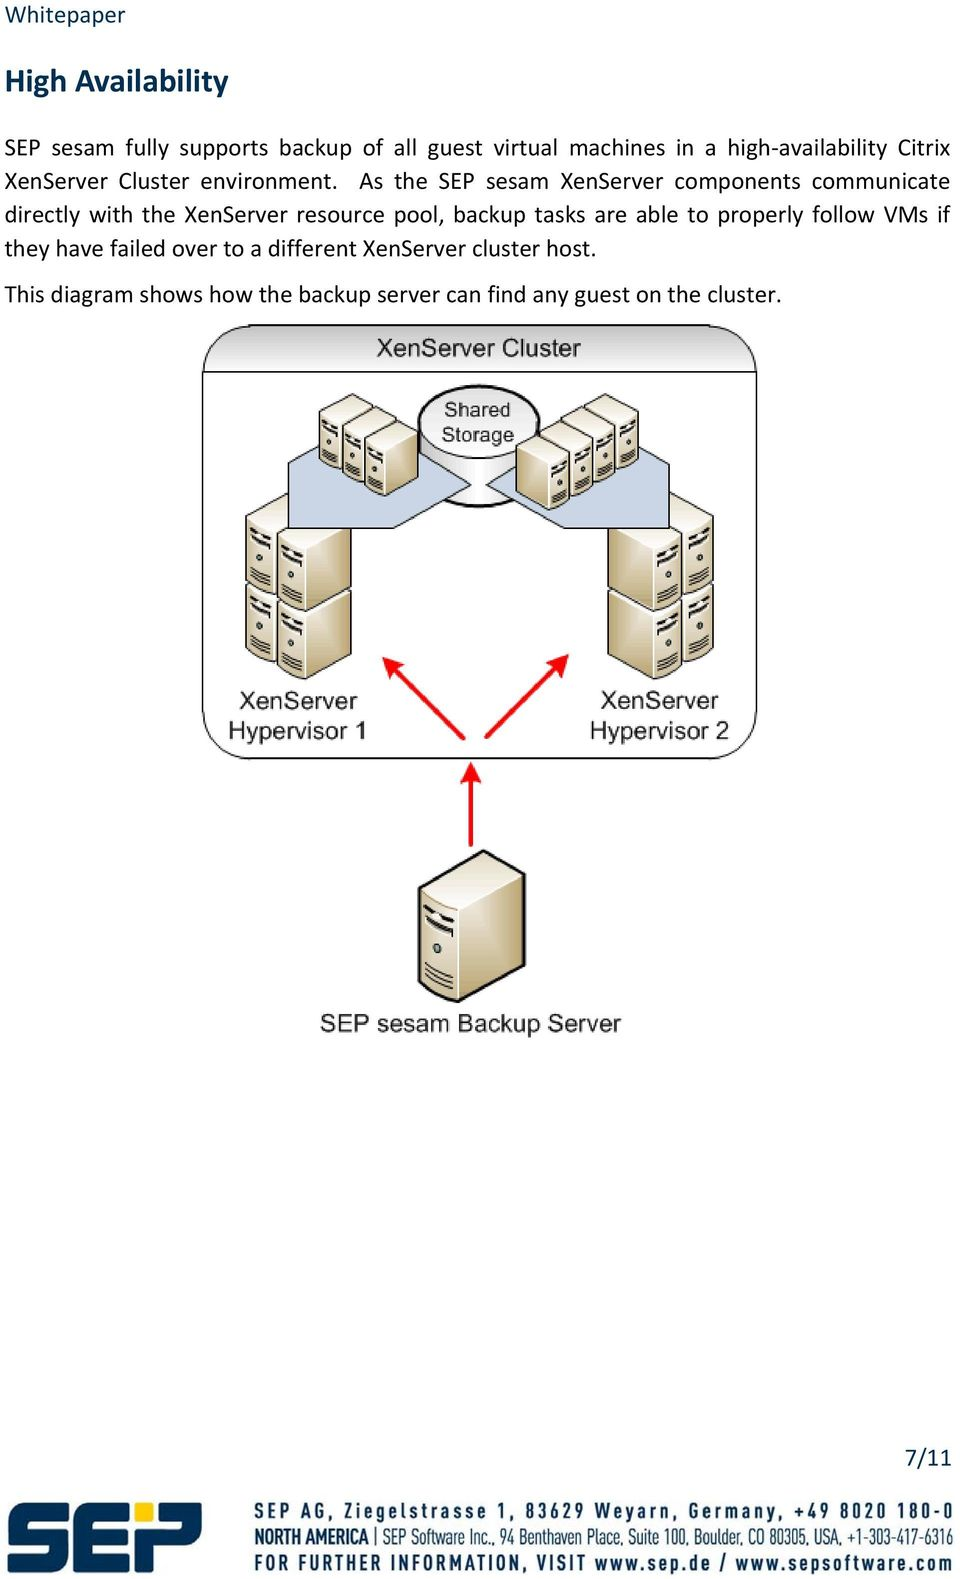 As the SEP sesam XenServer components communicate directly with the XenServer resource pool, backup tasks